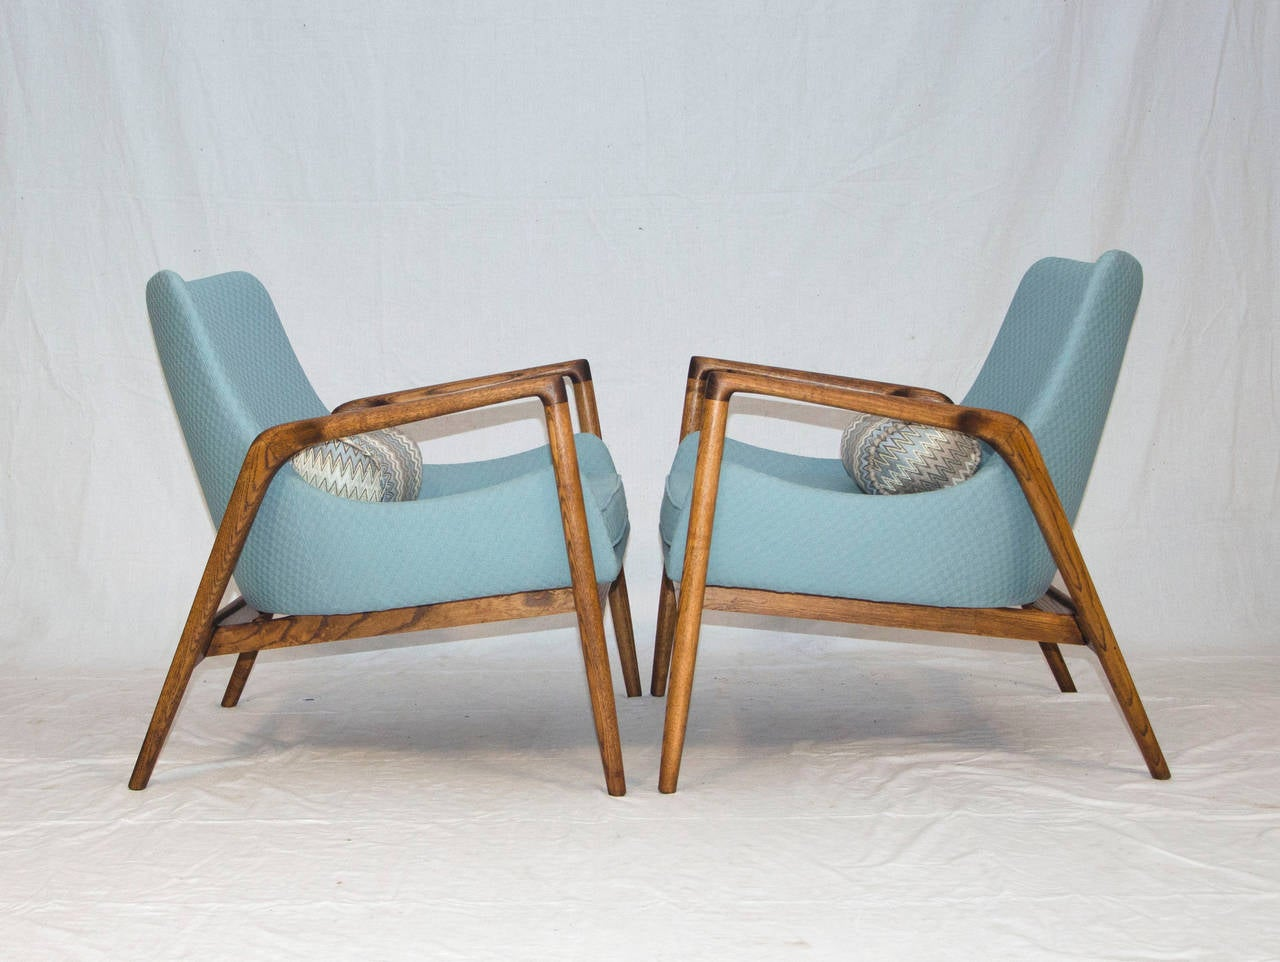 This sculptural pair of lounge chairs by ib kofod larsen is no longer - Mid Century Pair Of Danish Lounge Chairs Ib Kofod Larsen 2